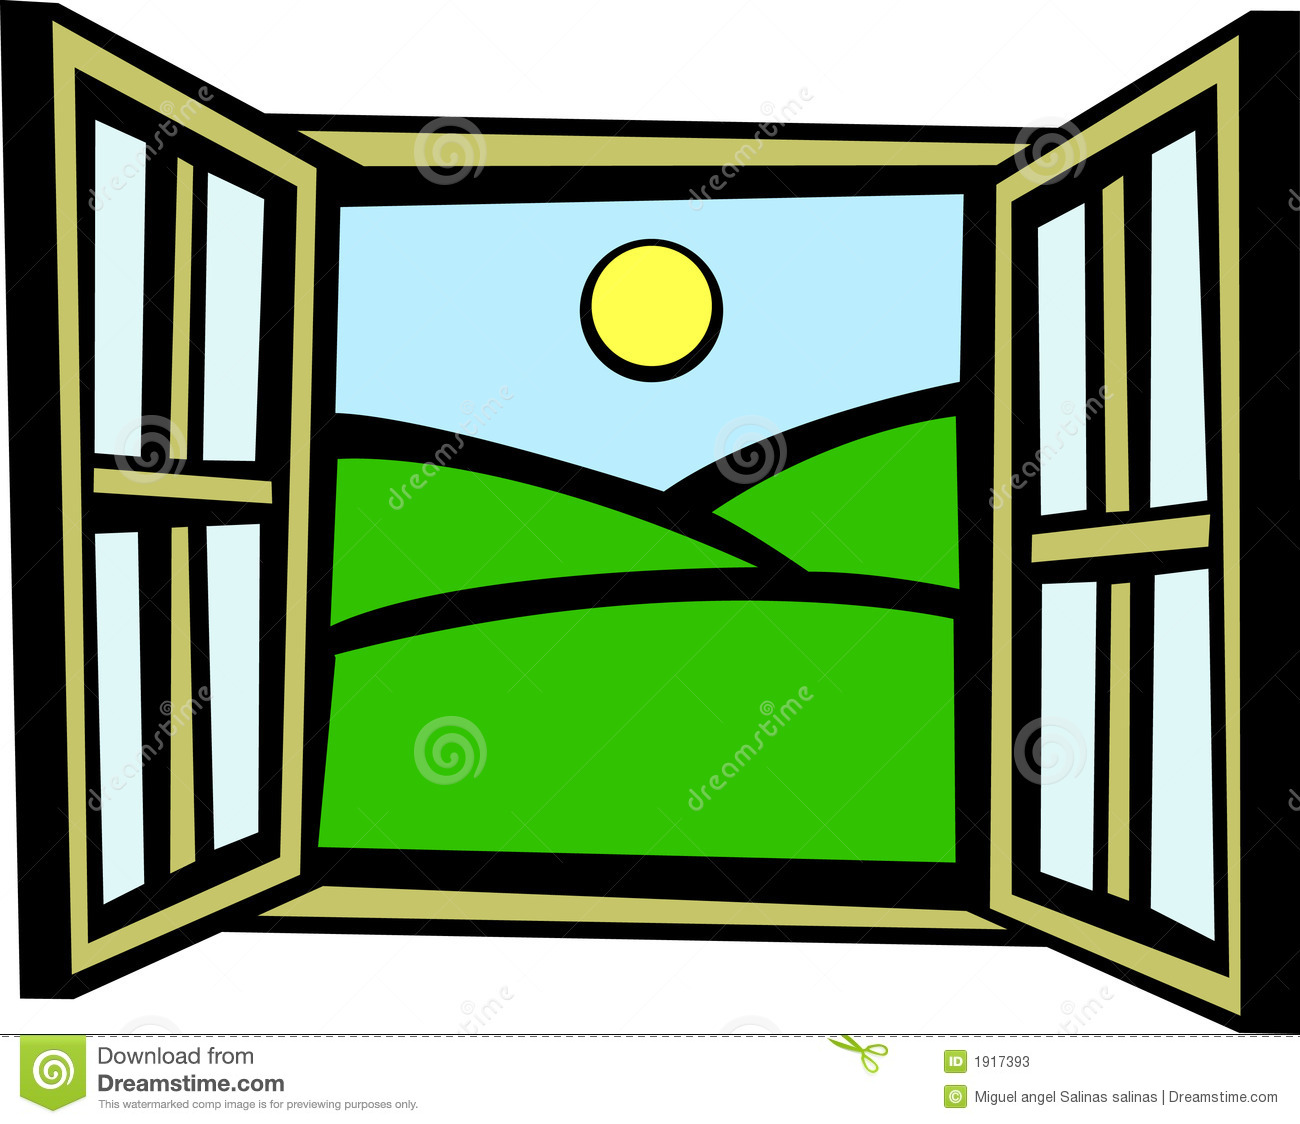 cleaning clipart at getdrawings com free for personal use cleaning rh getdrawings com Open Window Open Window